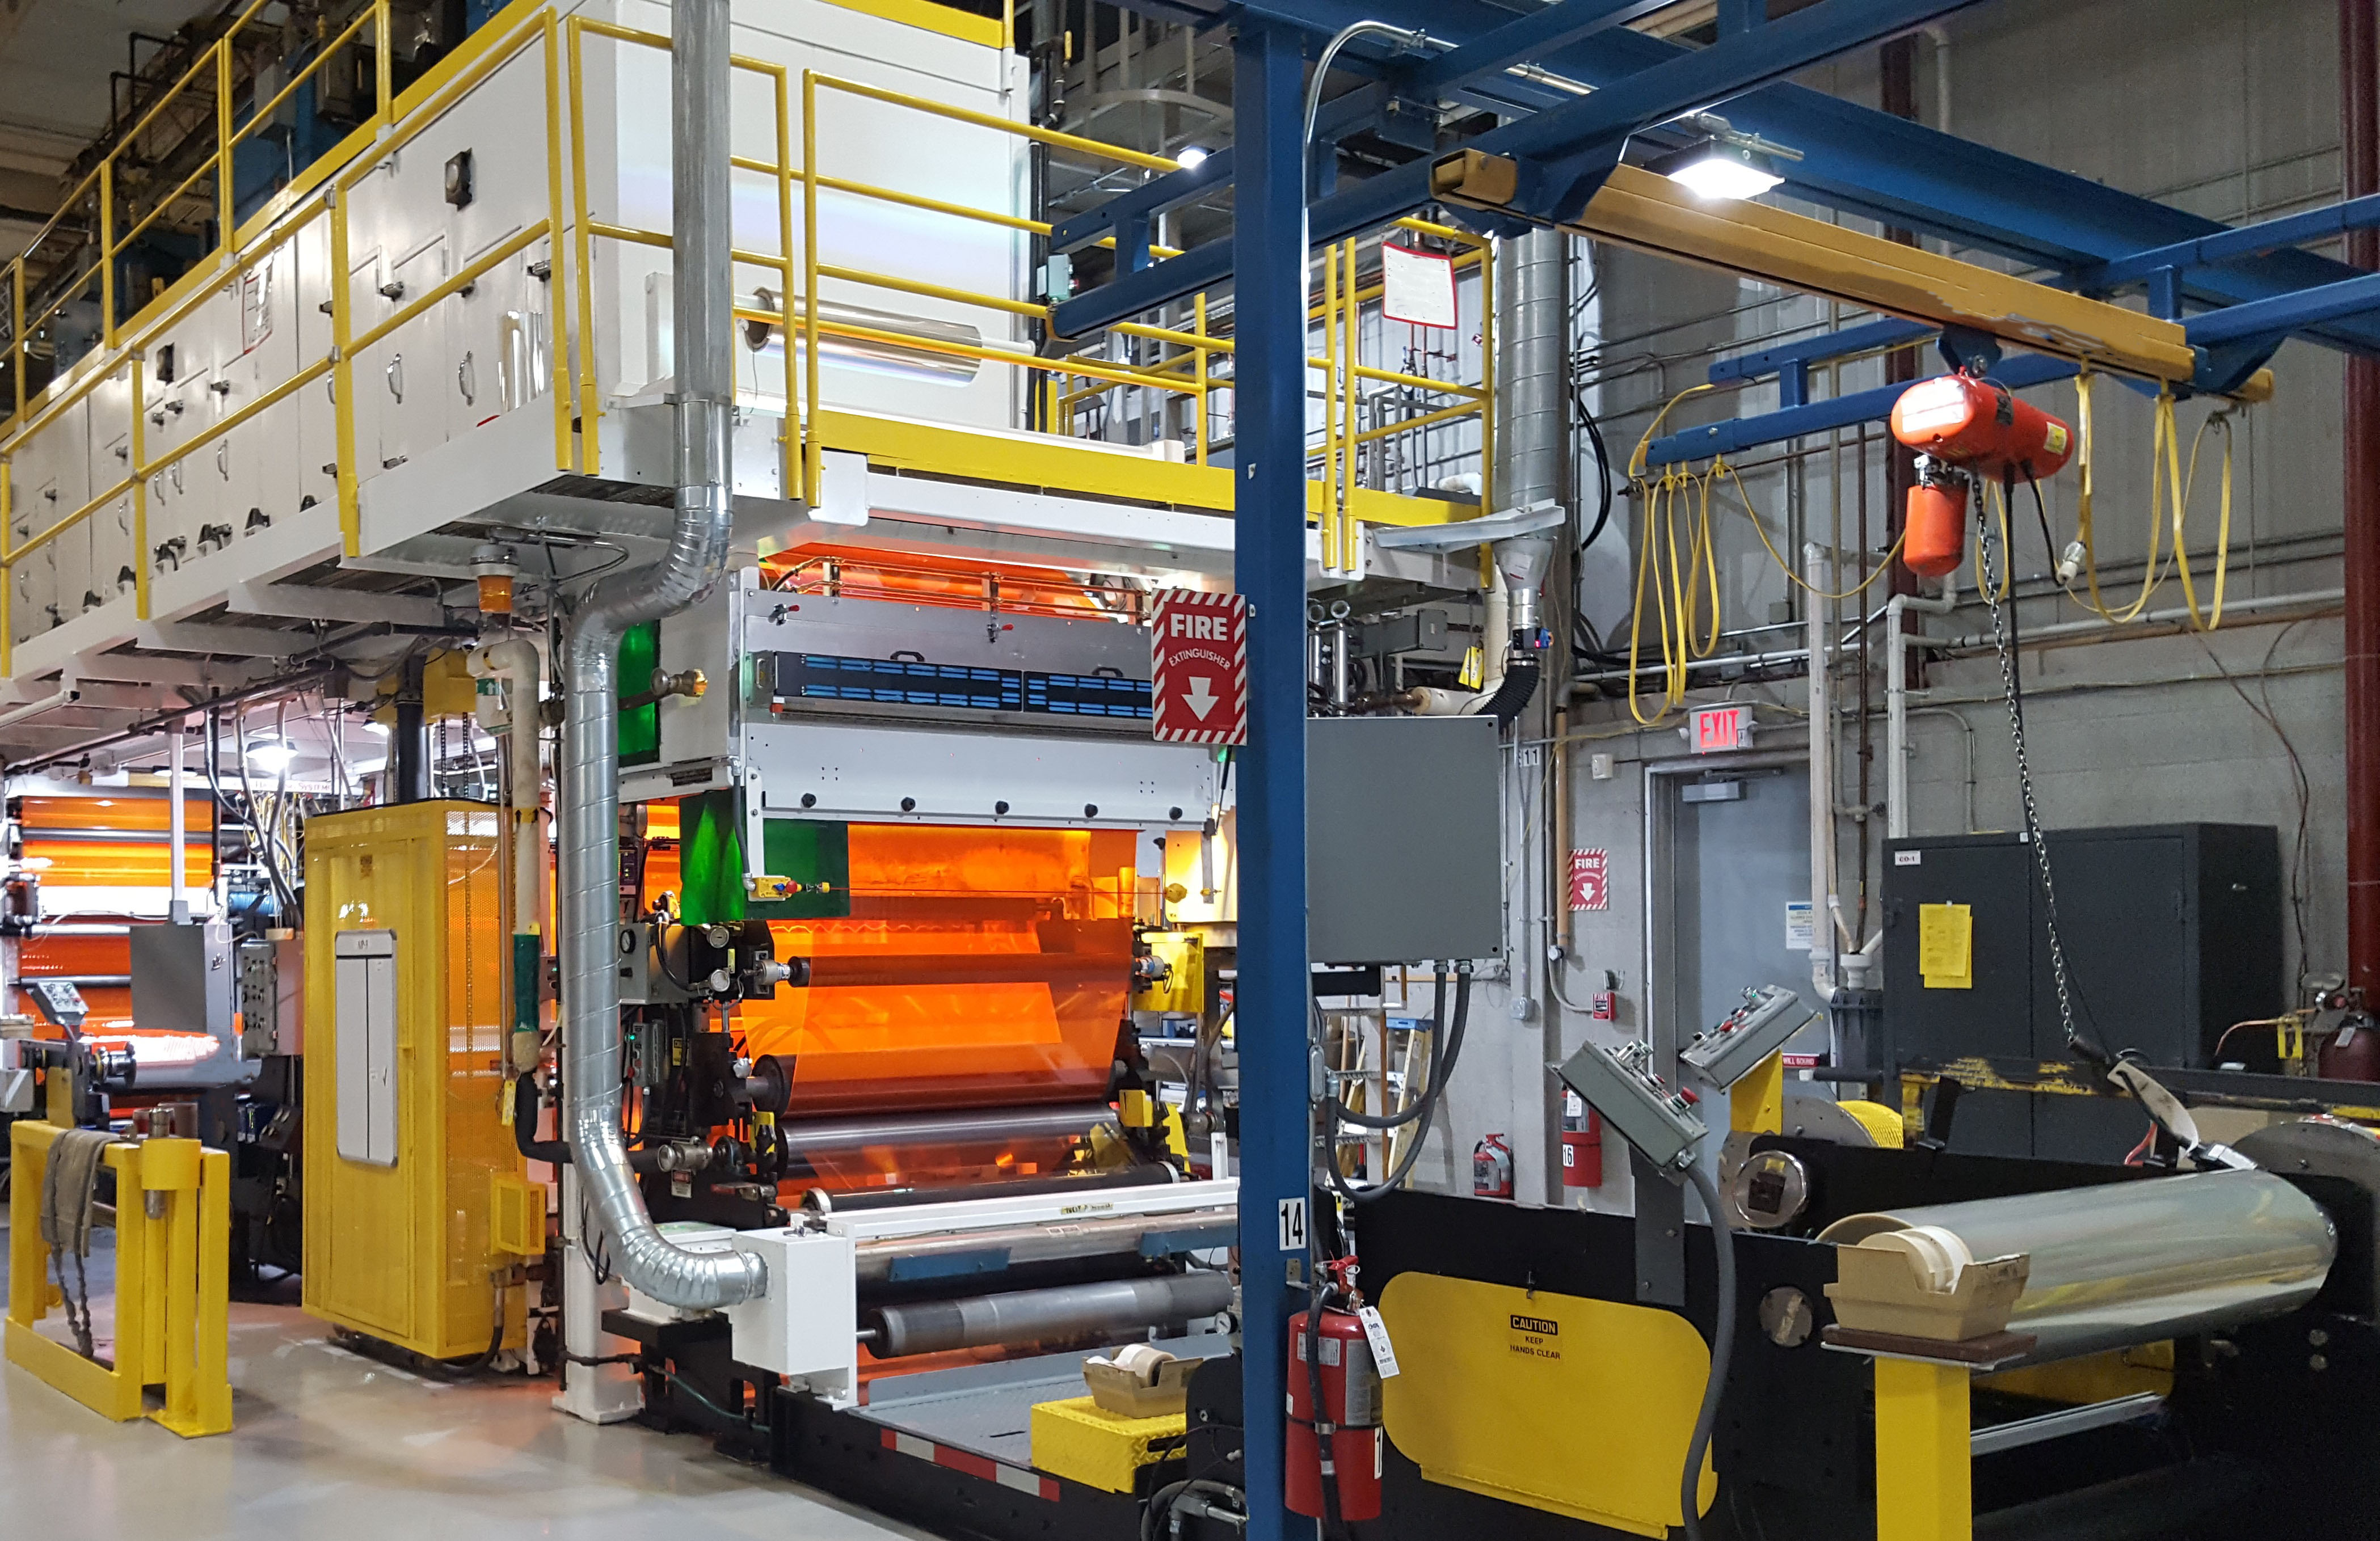 film coating line downtime resolved with edc s successful drives